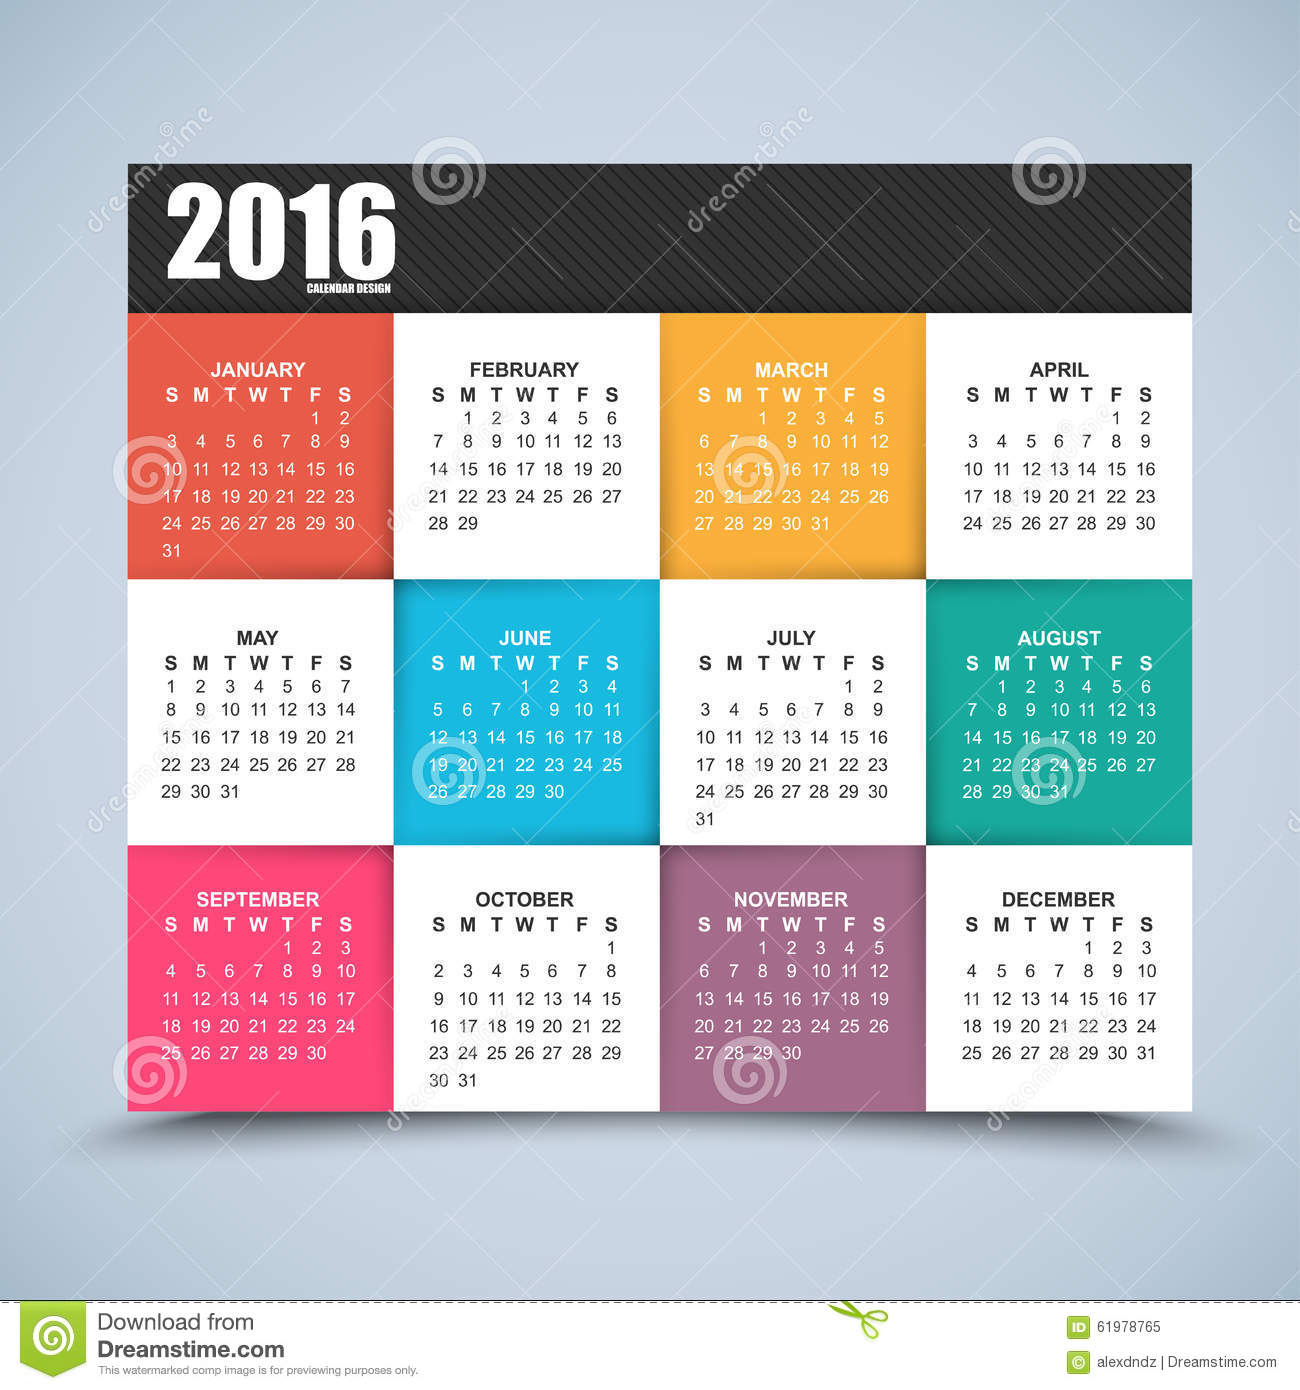 Calendar Design With Pictures : Calendar design year stock vector image